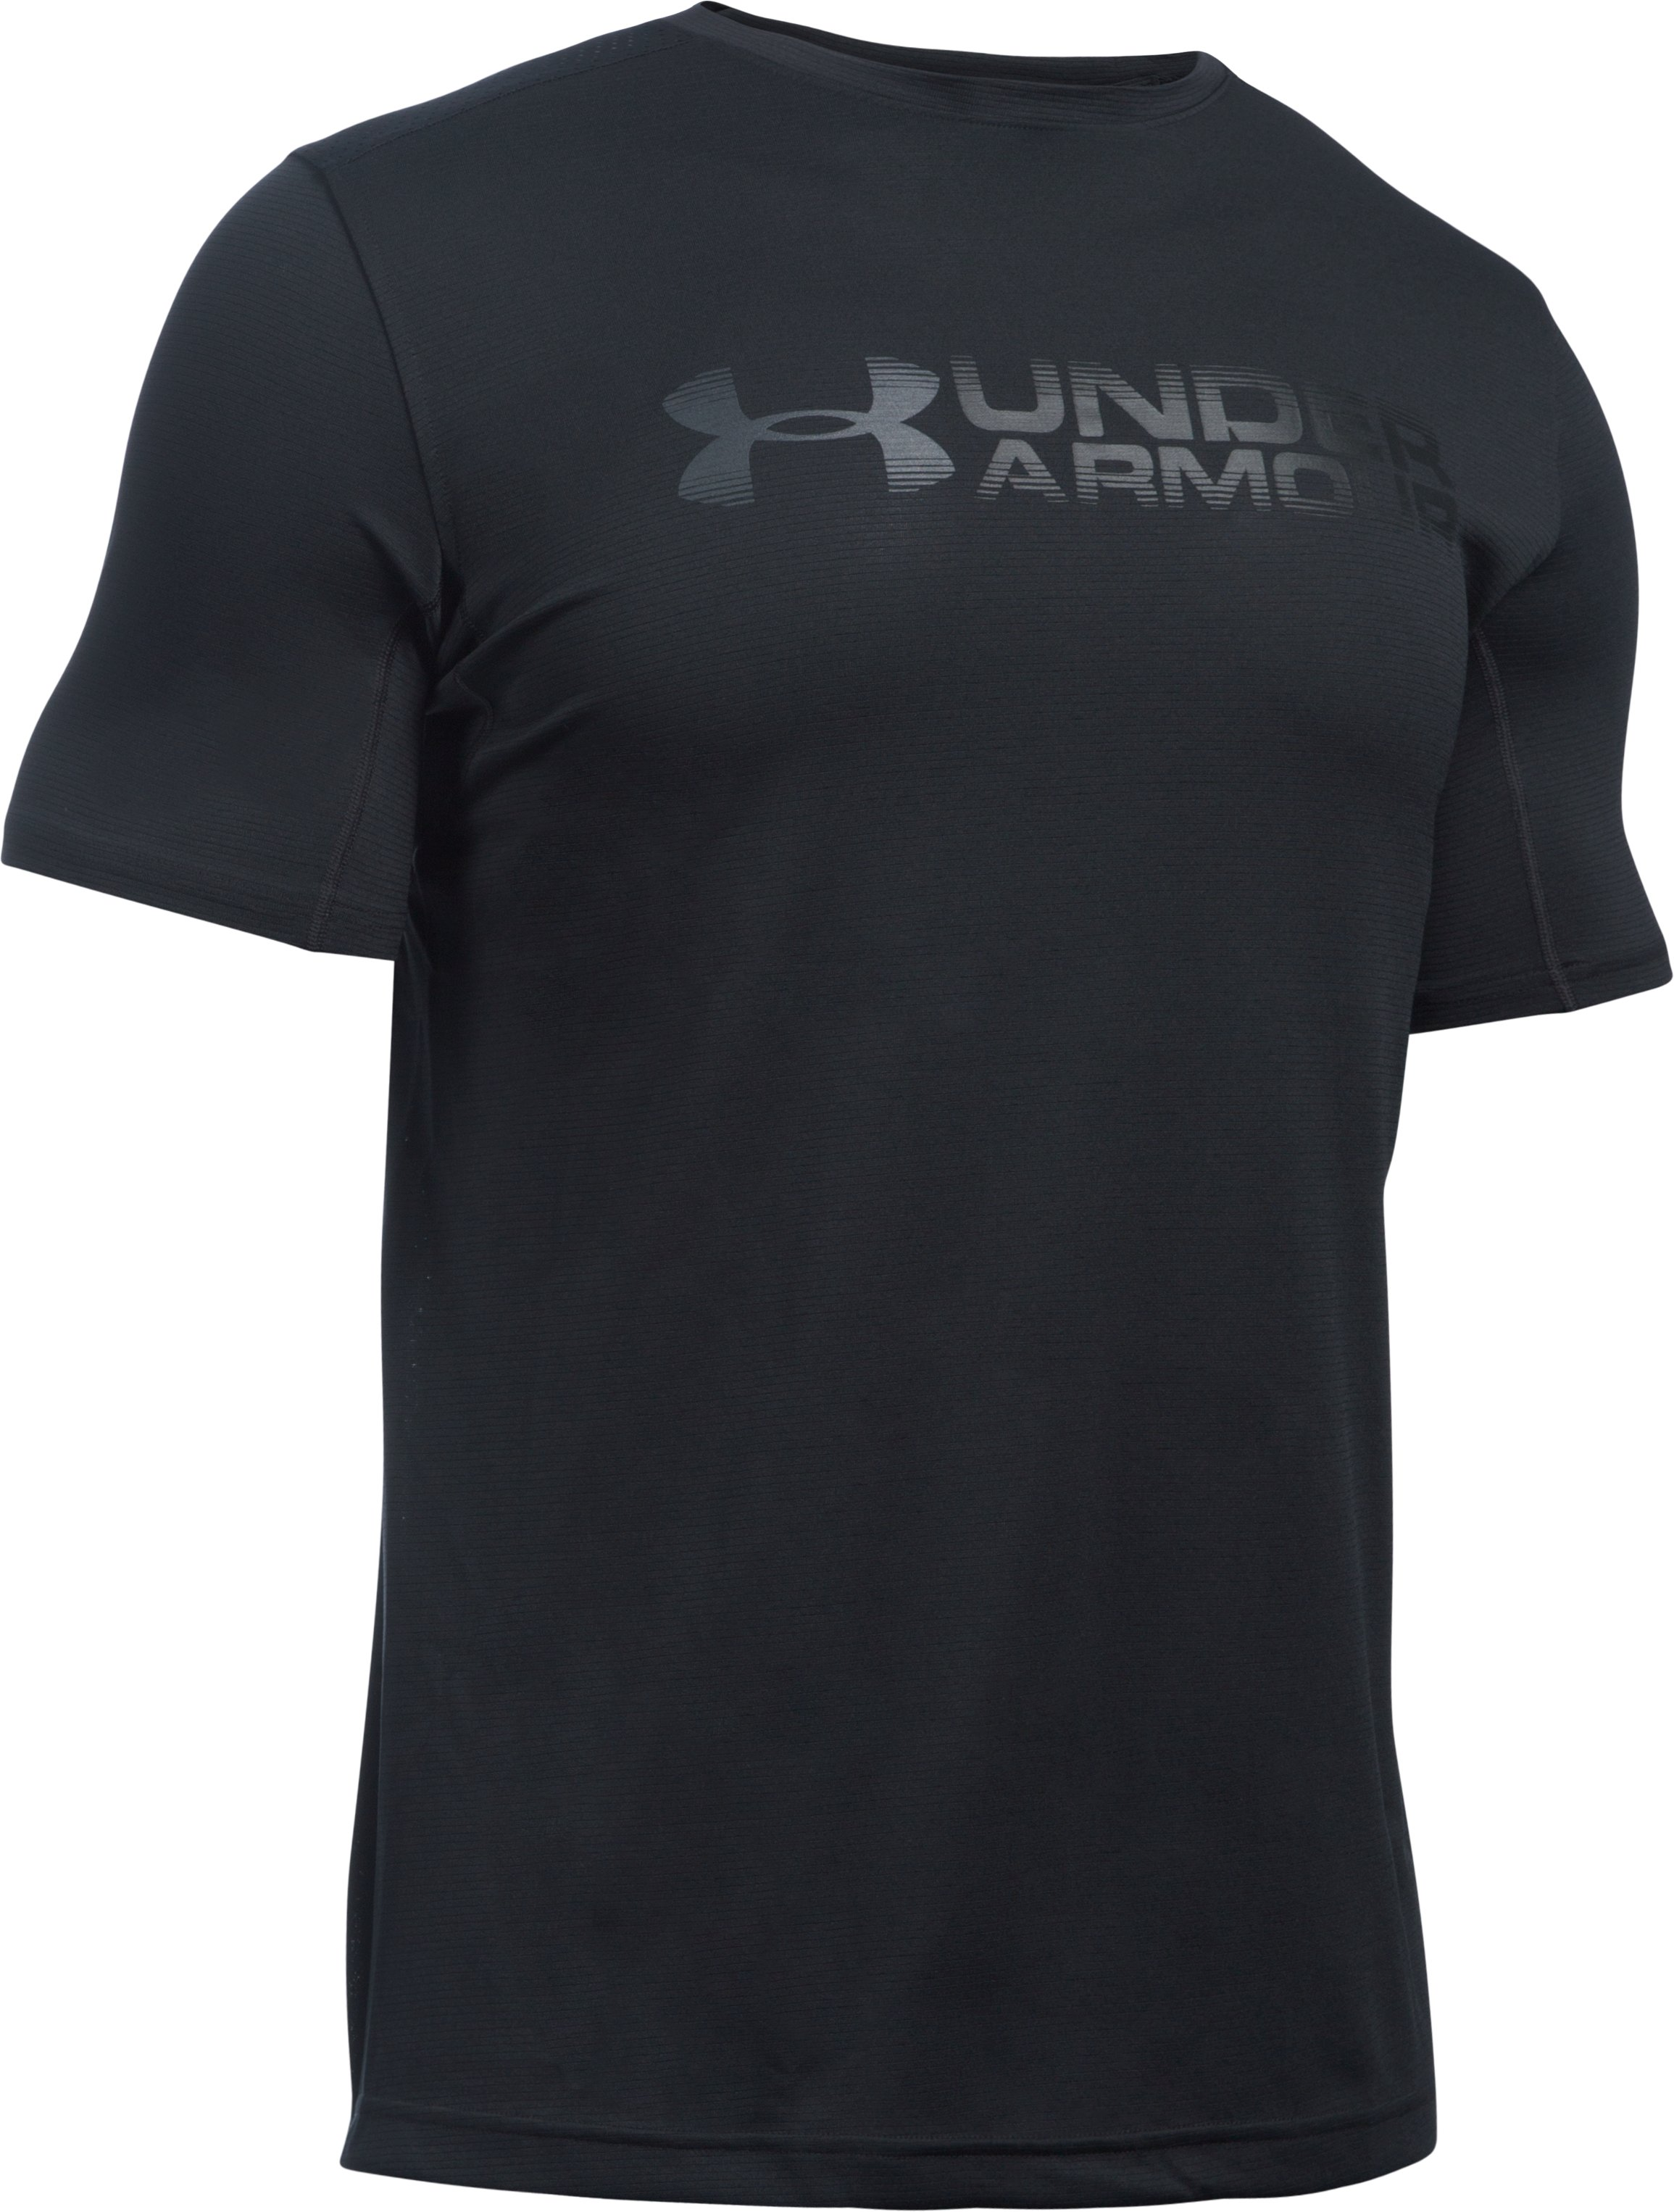 Men's UA Raid Turbo Sleeveless T-Shirt, Black , undefined